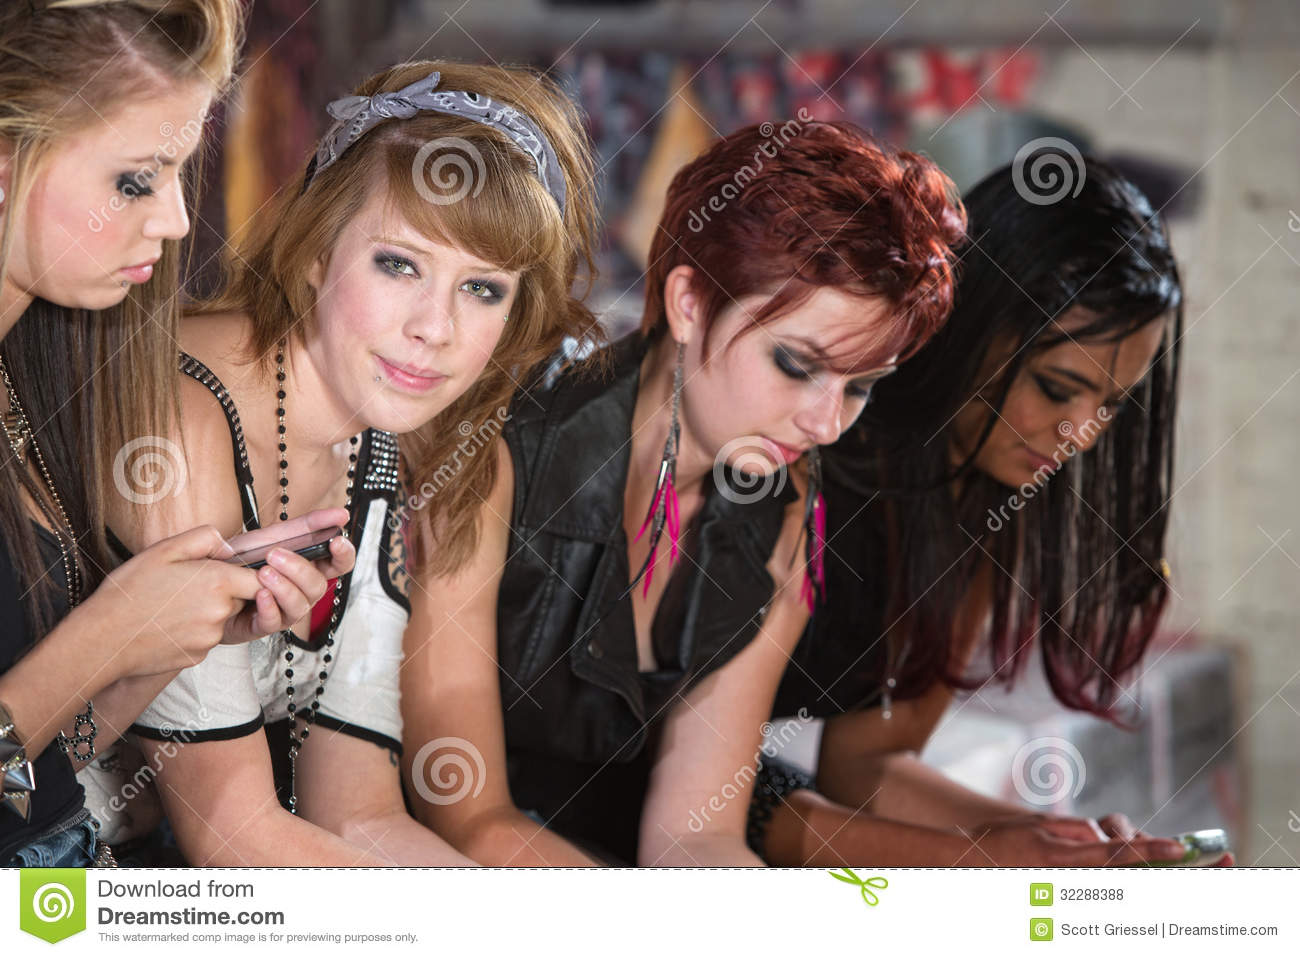 Cute Teenagers four cute teenagers royalty free stock photos - image: 32288388